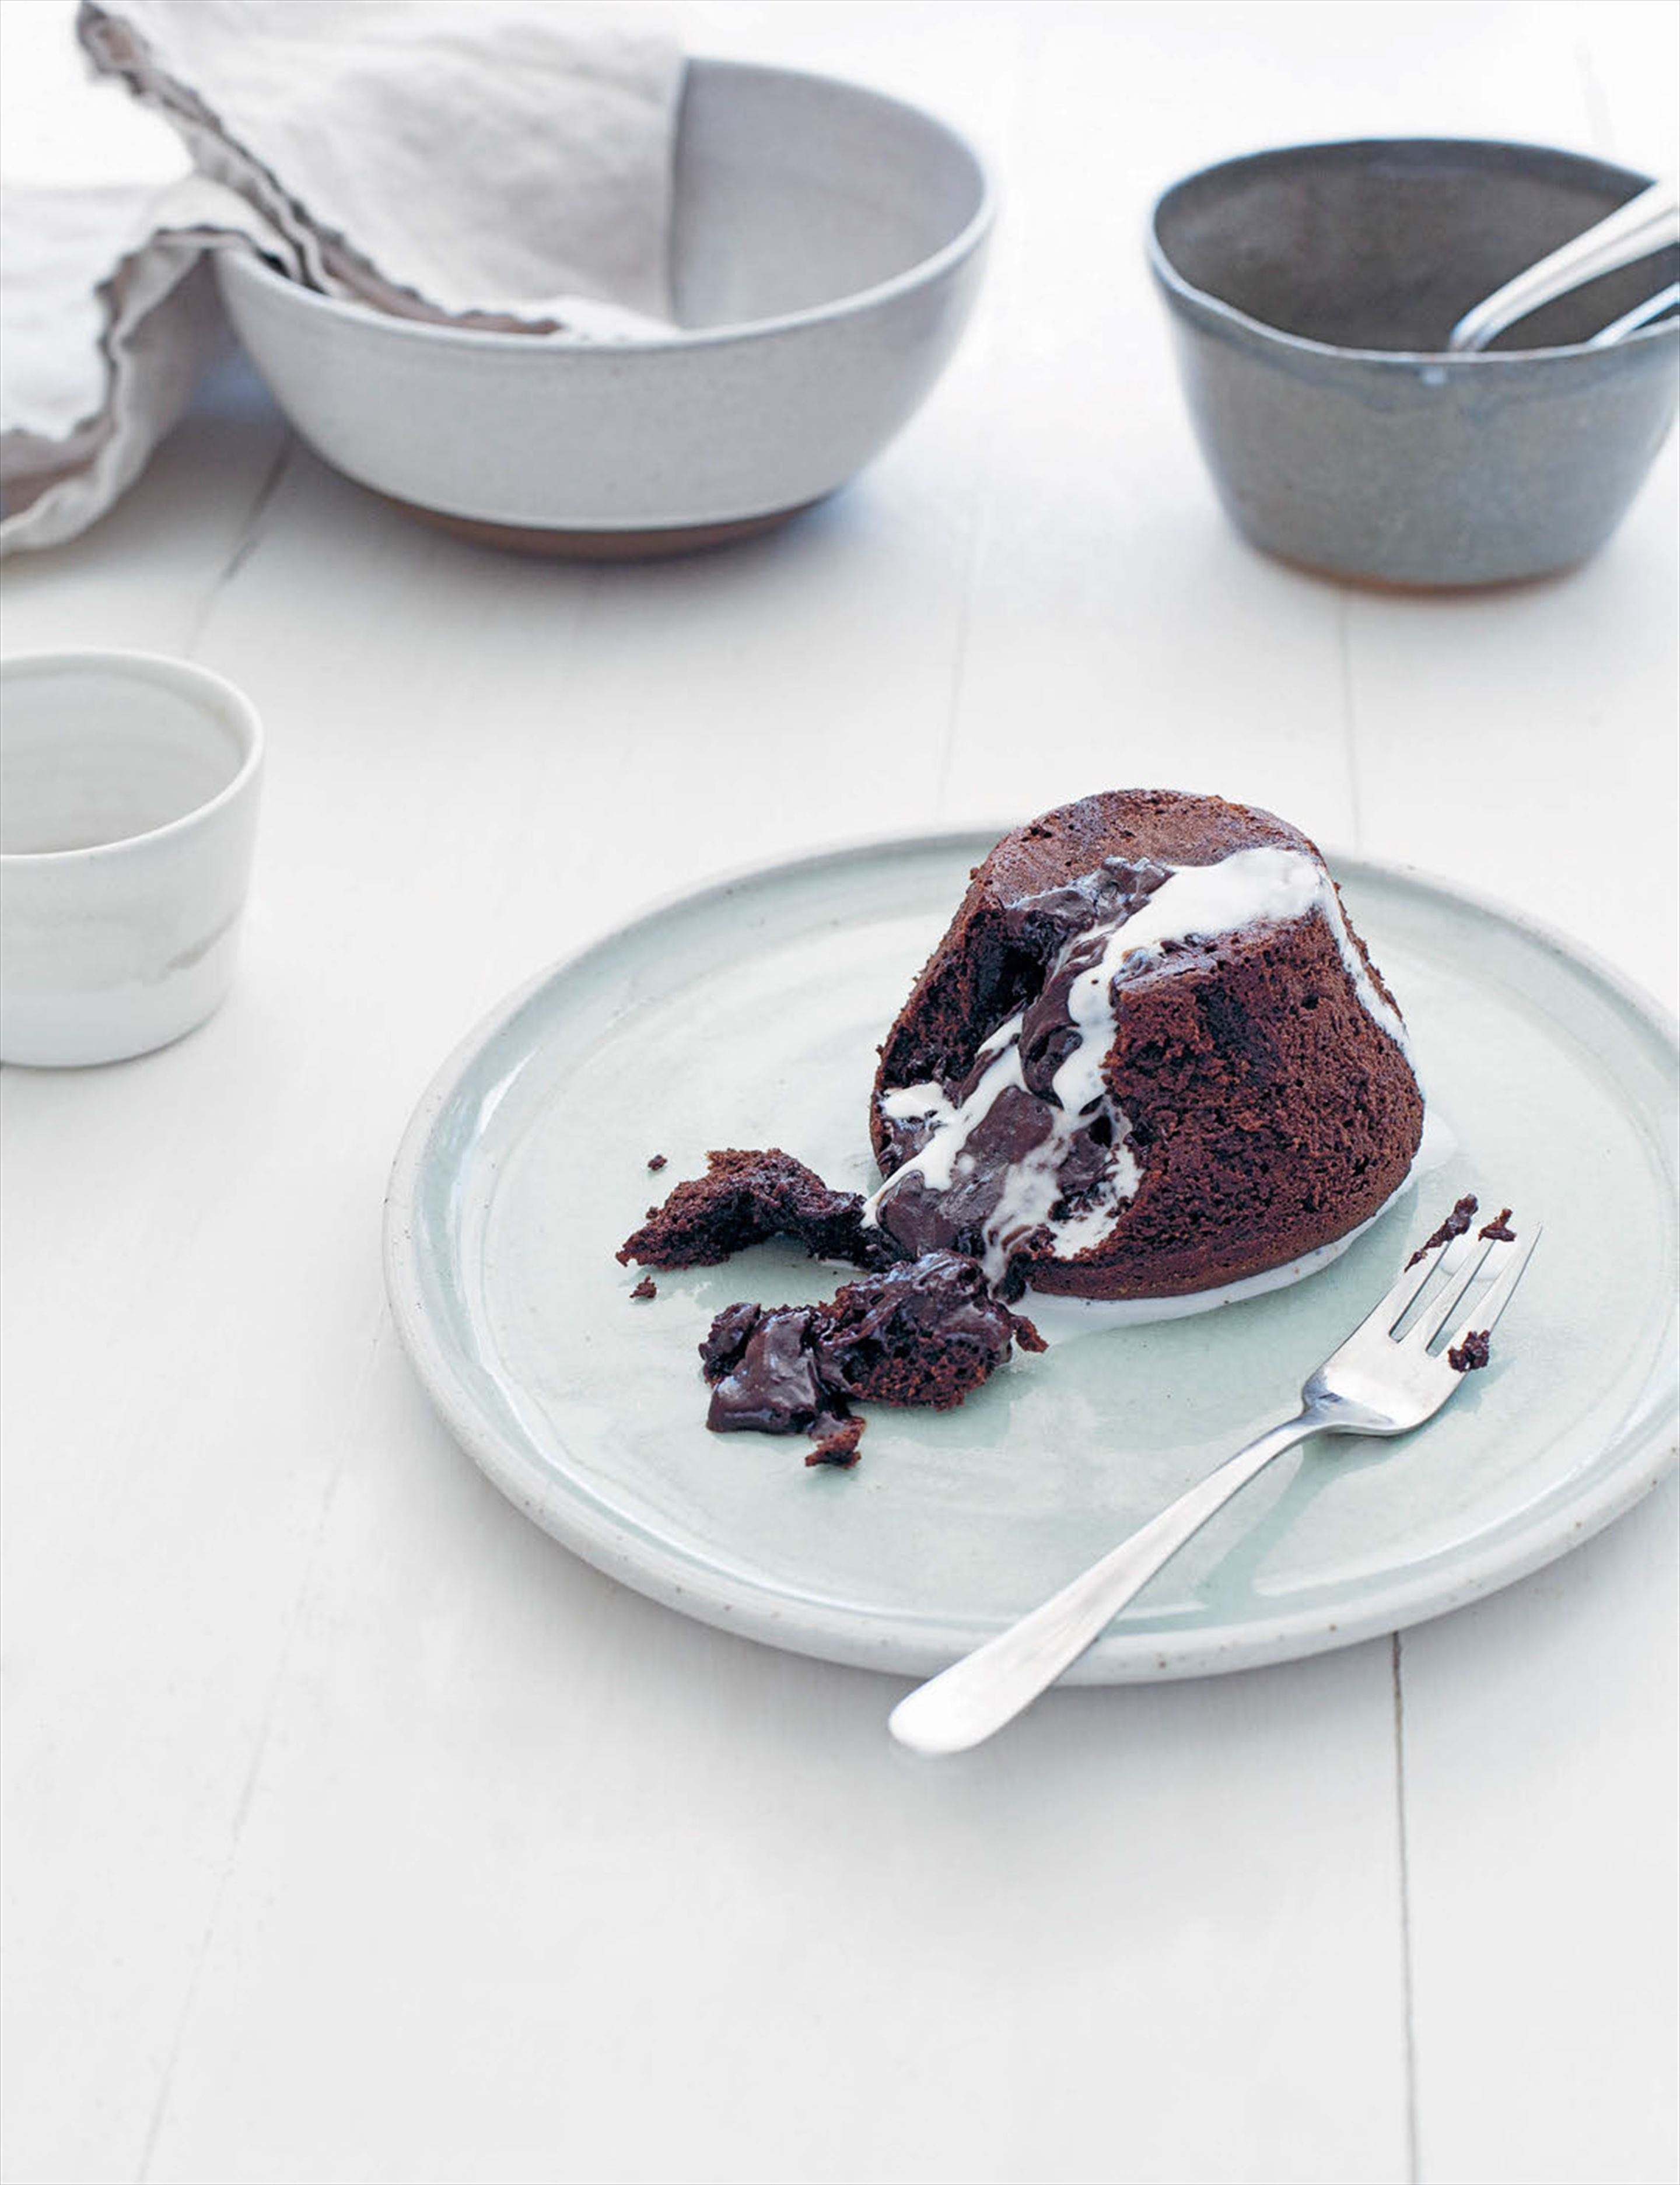 Chocolate molten puddings